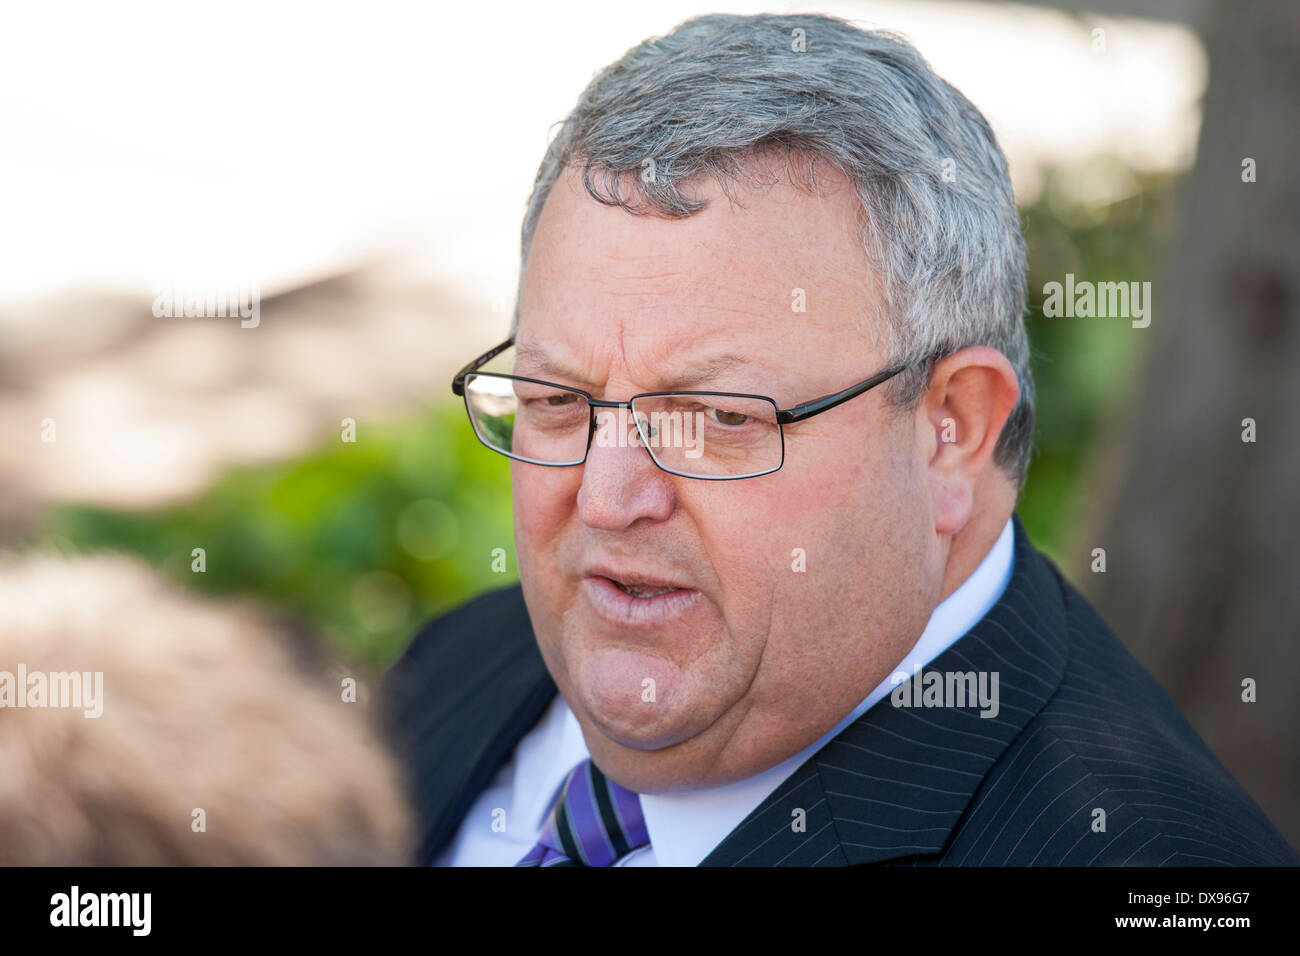 Gerry Brownlee. New Zealand politician Leader of the House, Minister for Transport, Minister for Canterbury Earthquake Recovery - Stock Image